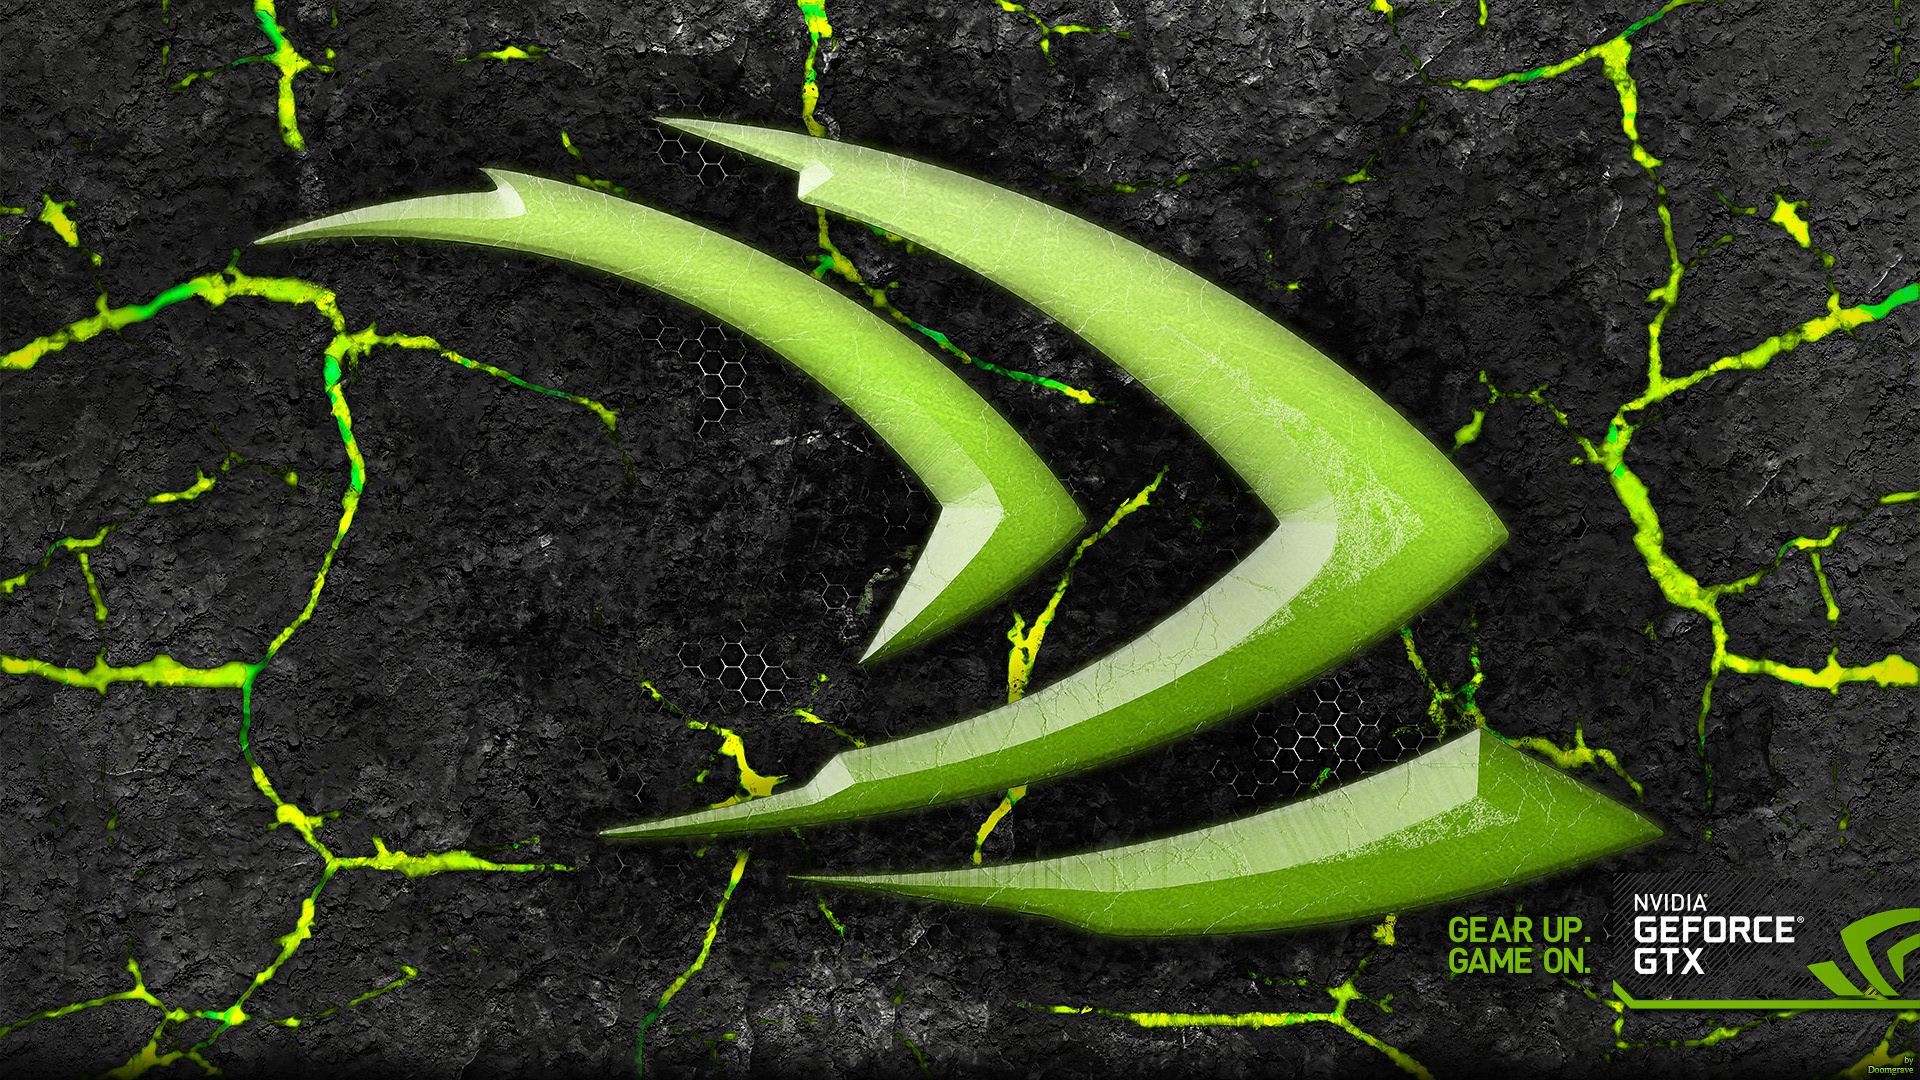 Nvidia Wallpaper 1080p Nvidia overpowered - doomgraveEvga Wallpaper 1080p